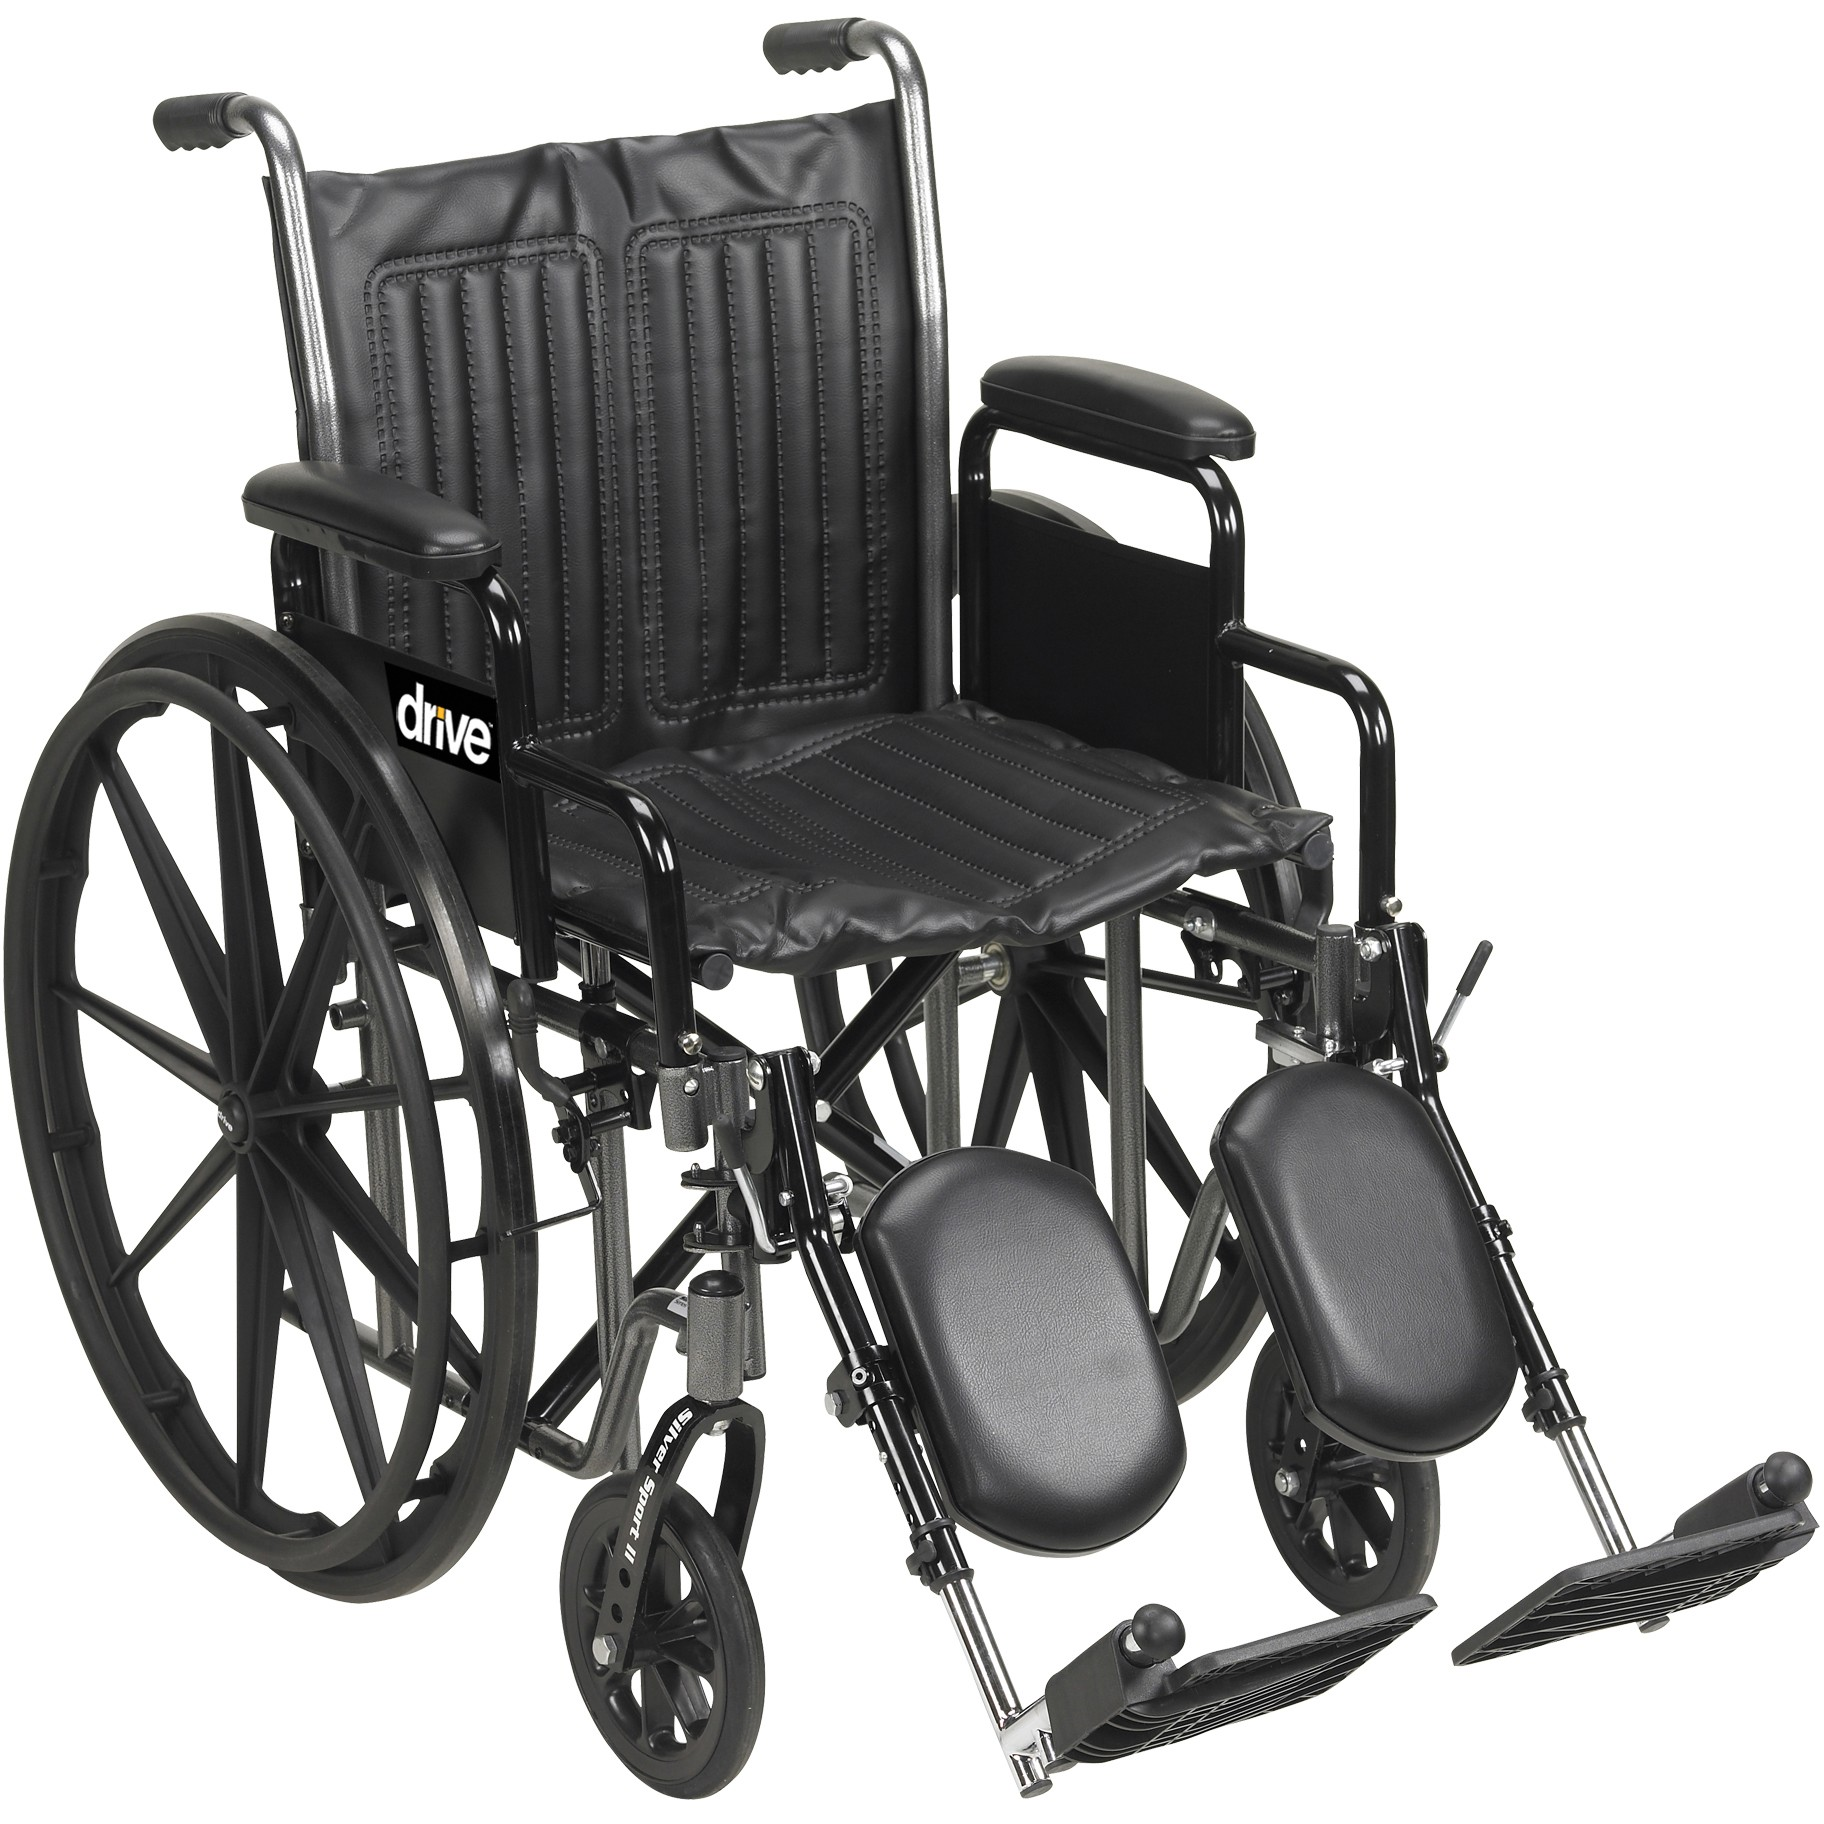 drive shower chair weight limit butterfly pedicure medical silver sport 2 wheelchair with dual axle